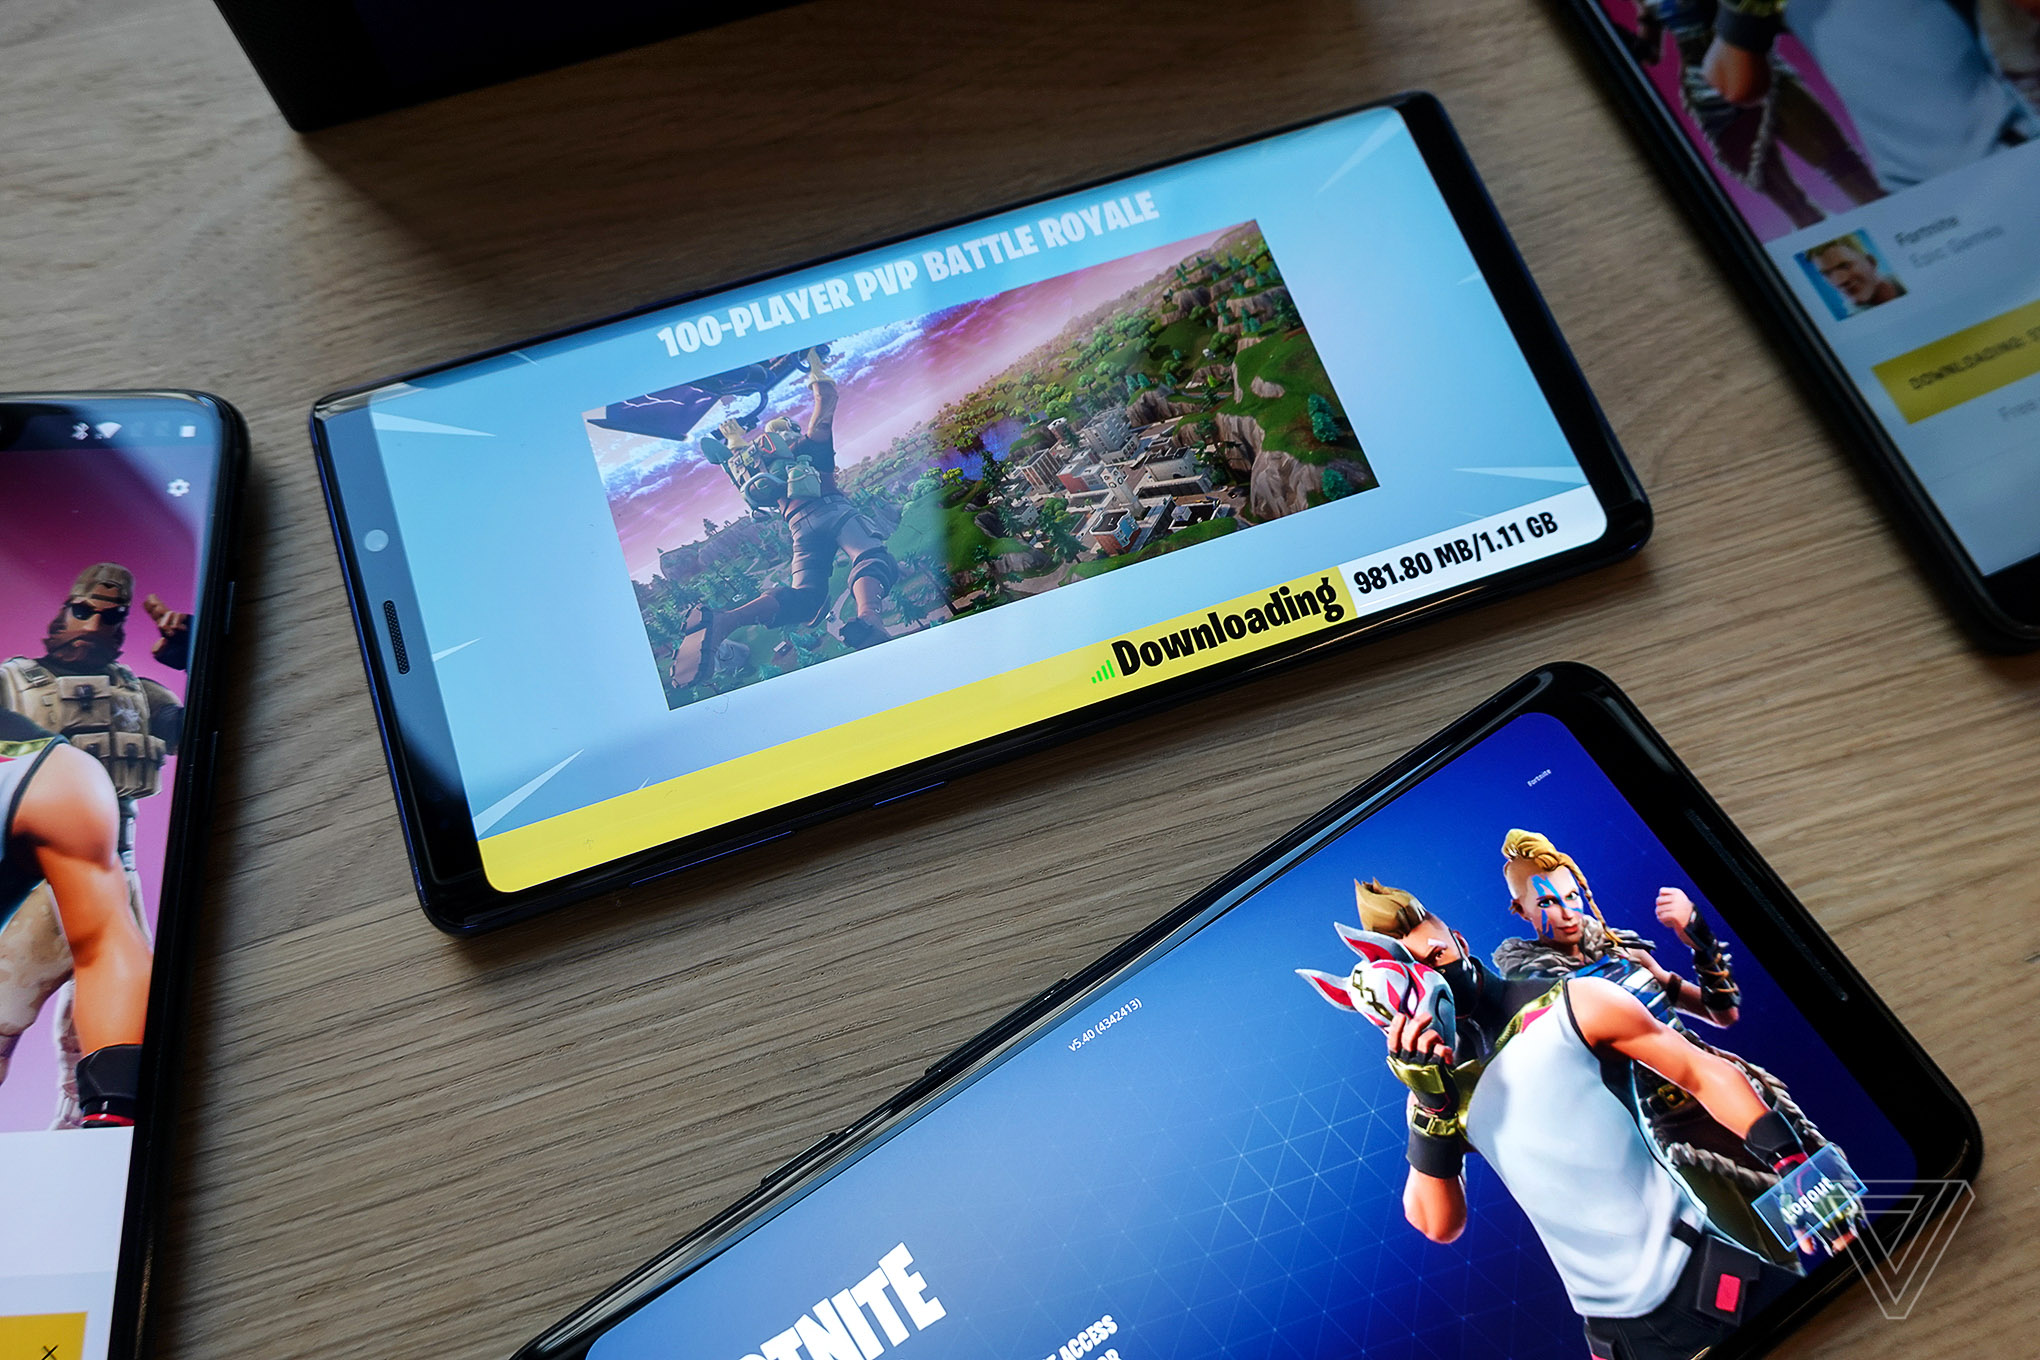 Fortnite on Android is now available for everyone - The Verge